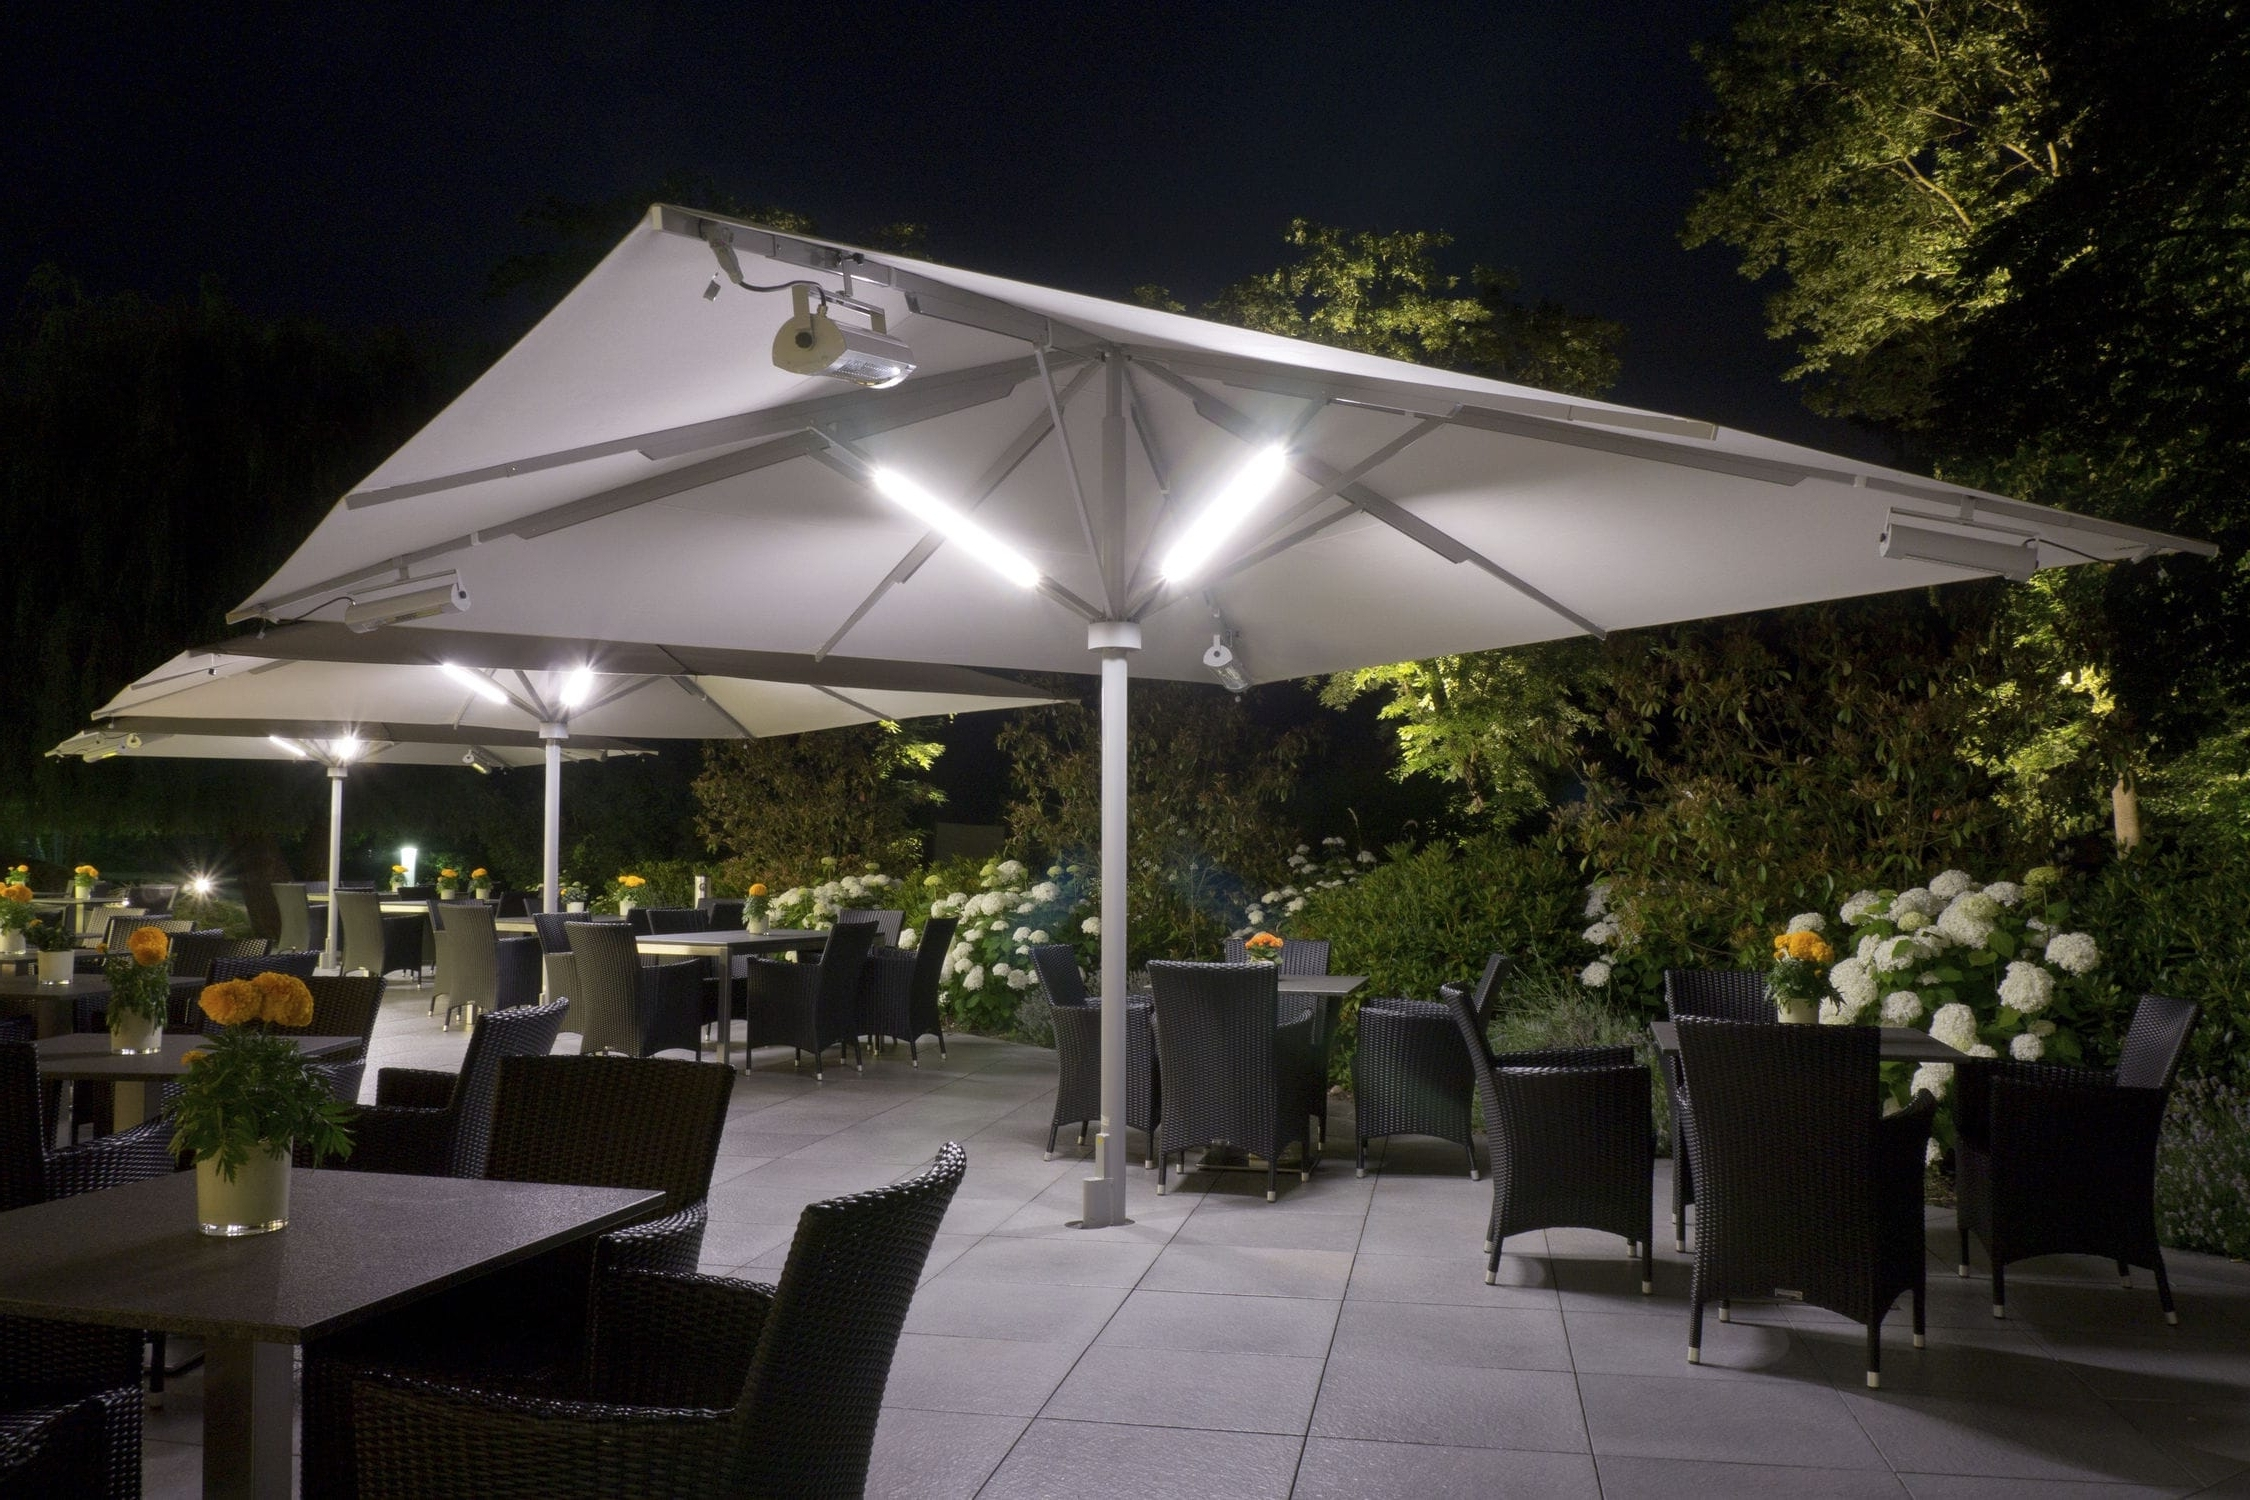 Recent Patio Umbrellas With Led Lights Intended For Solar Powered Lights For Patio Umbrellas • Patio Ideas (Gallery 16 of 20)